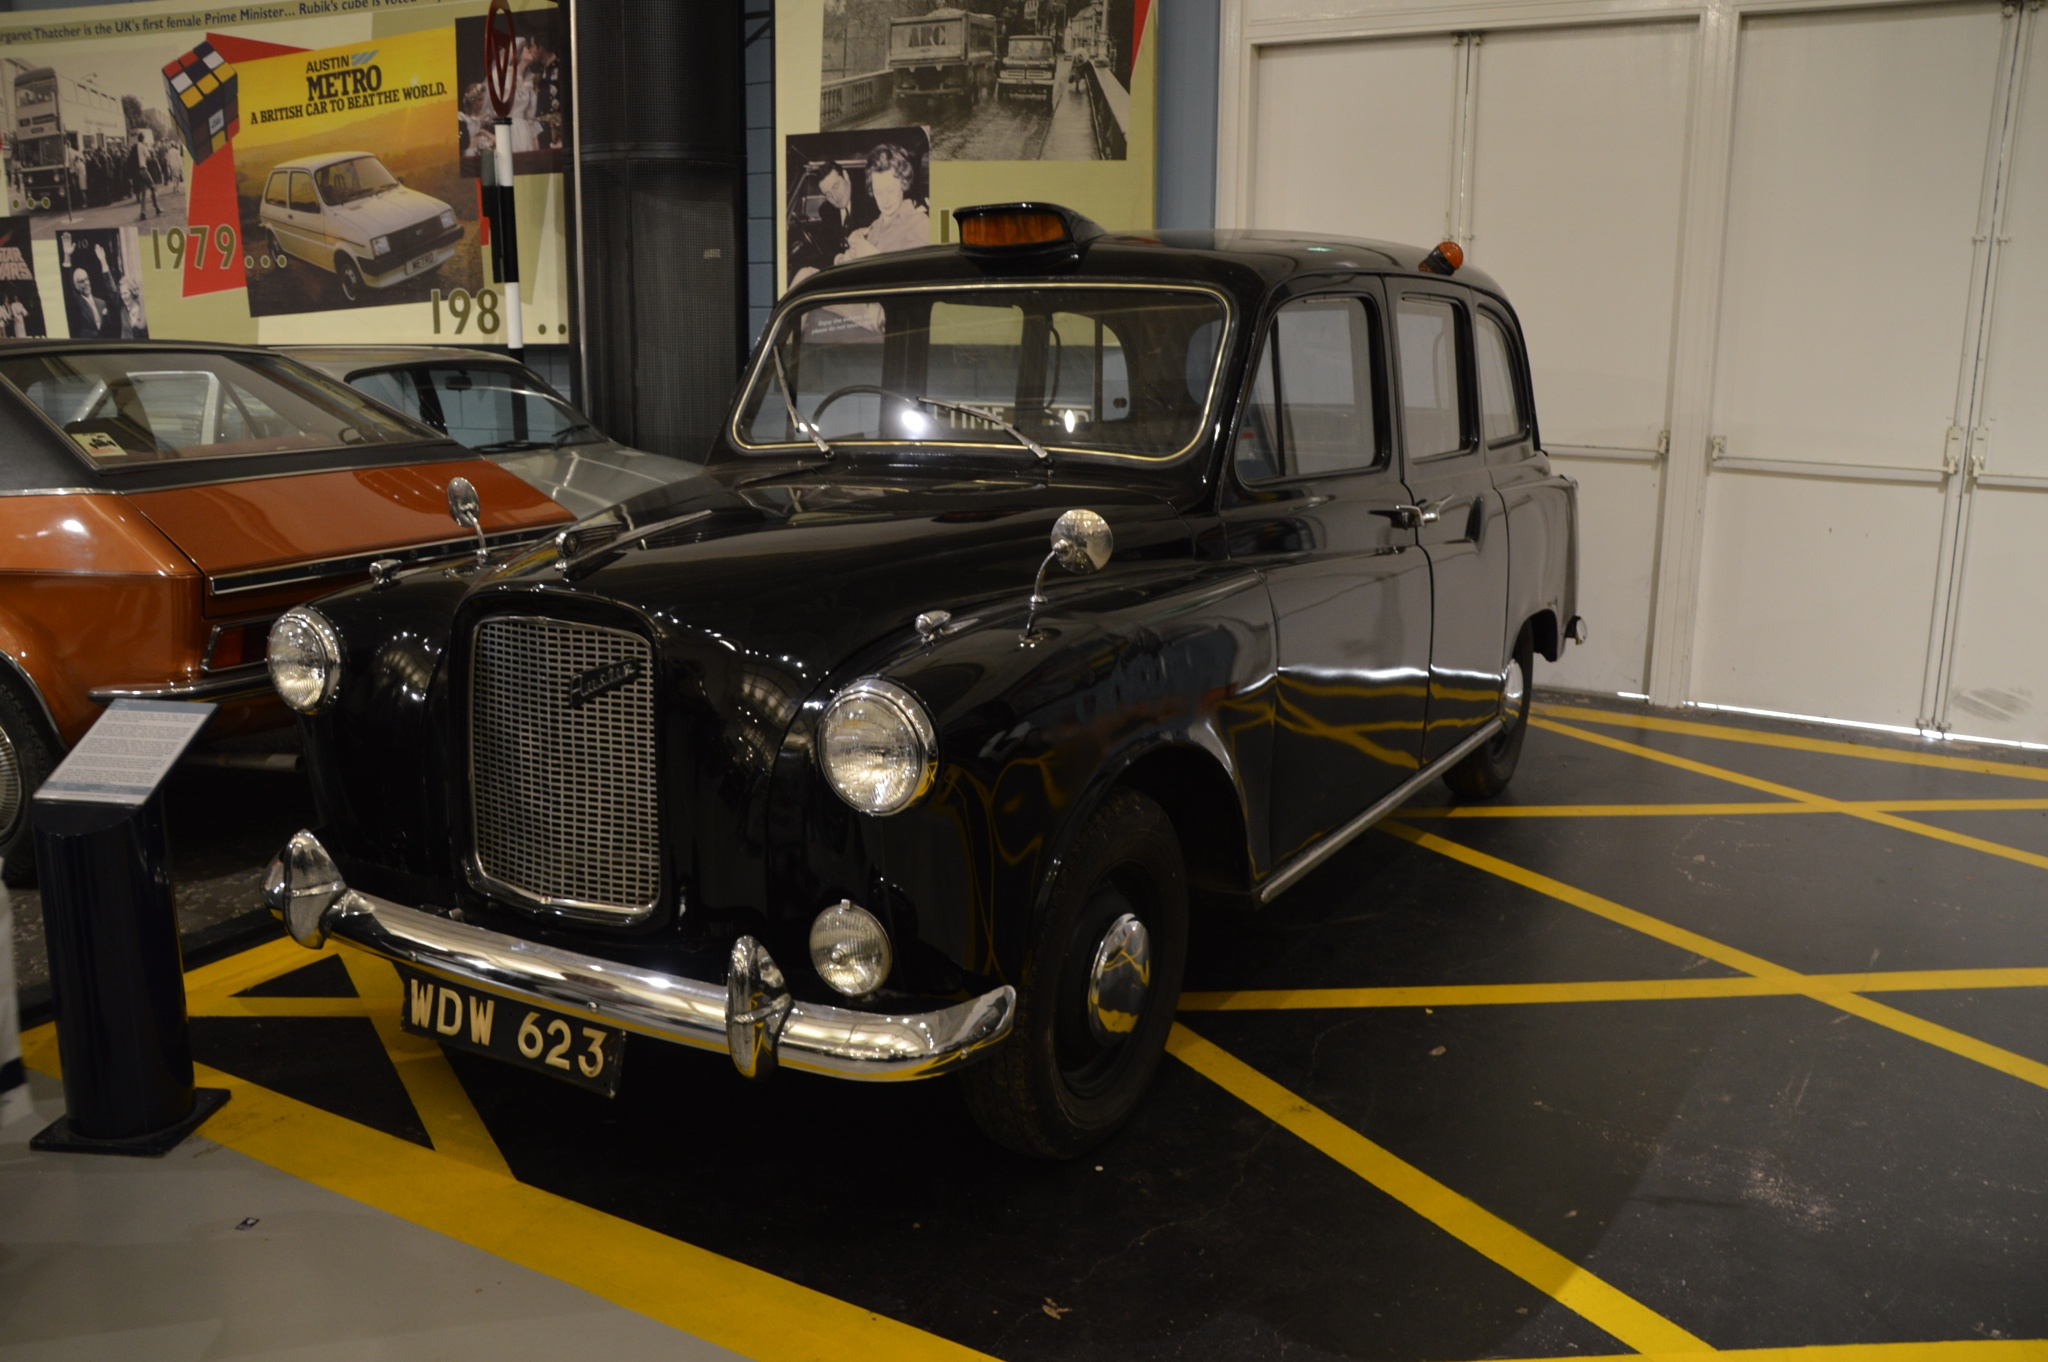 Austin TX4 Taxi - WDW 623 - 1961 by Graham Wood Photo Collection